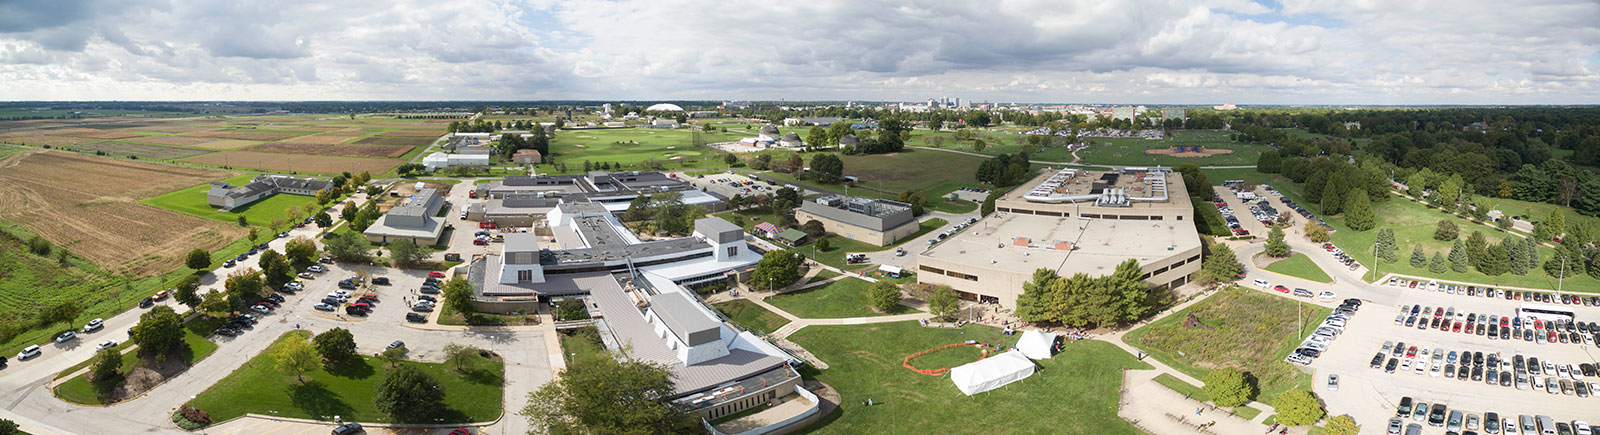 aerial view of veterinary campus 2016